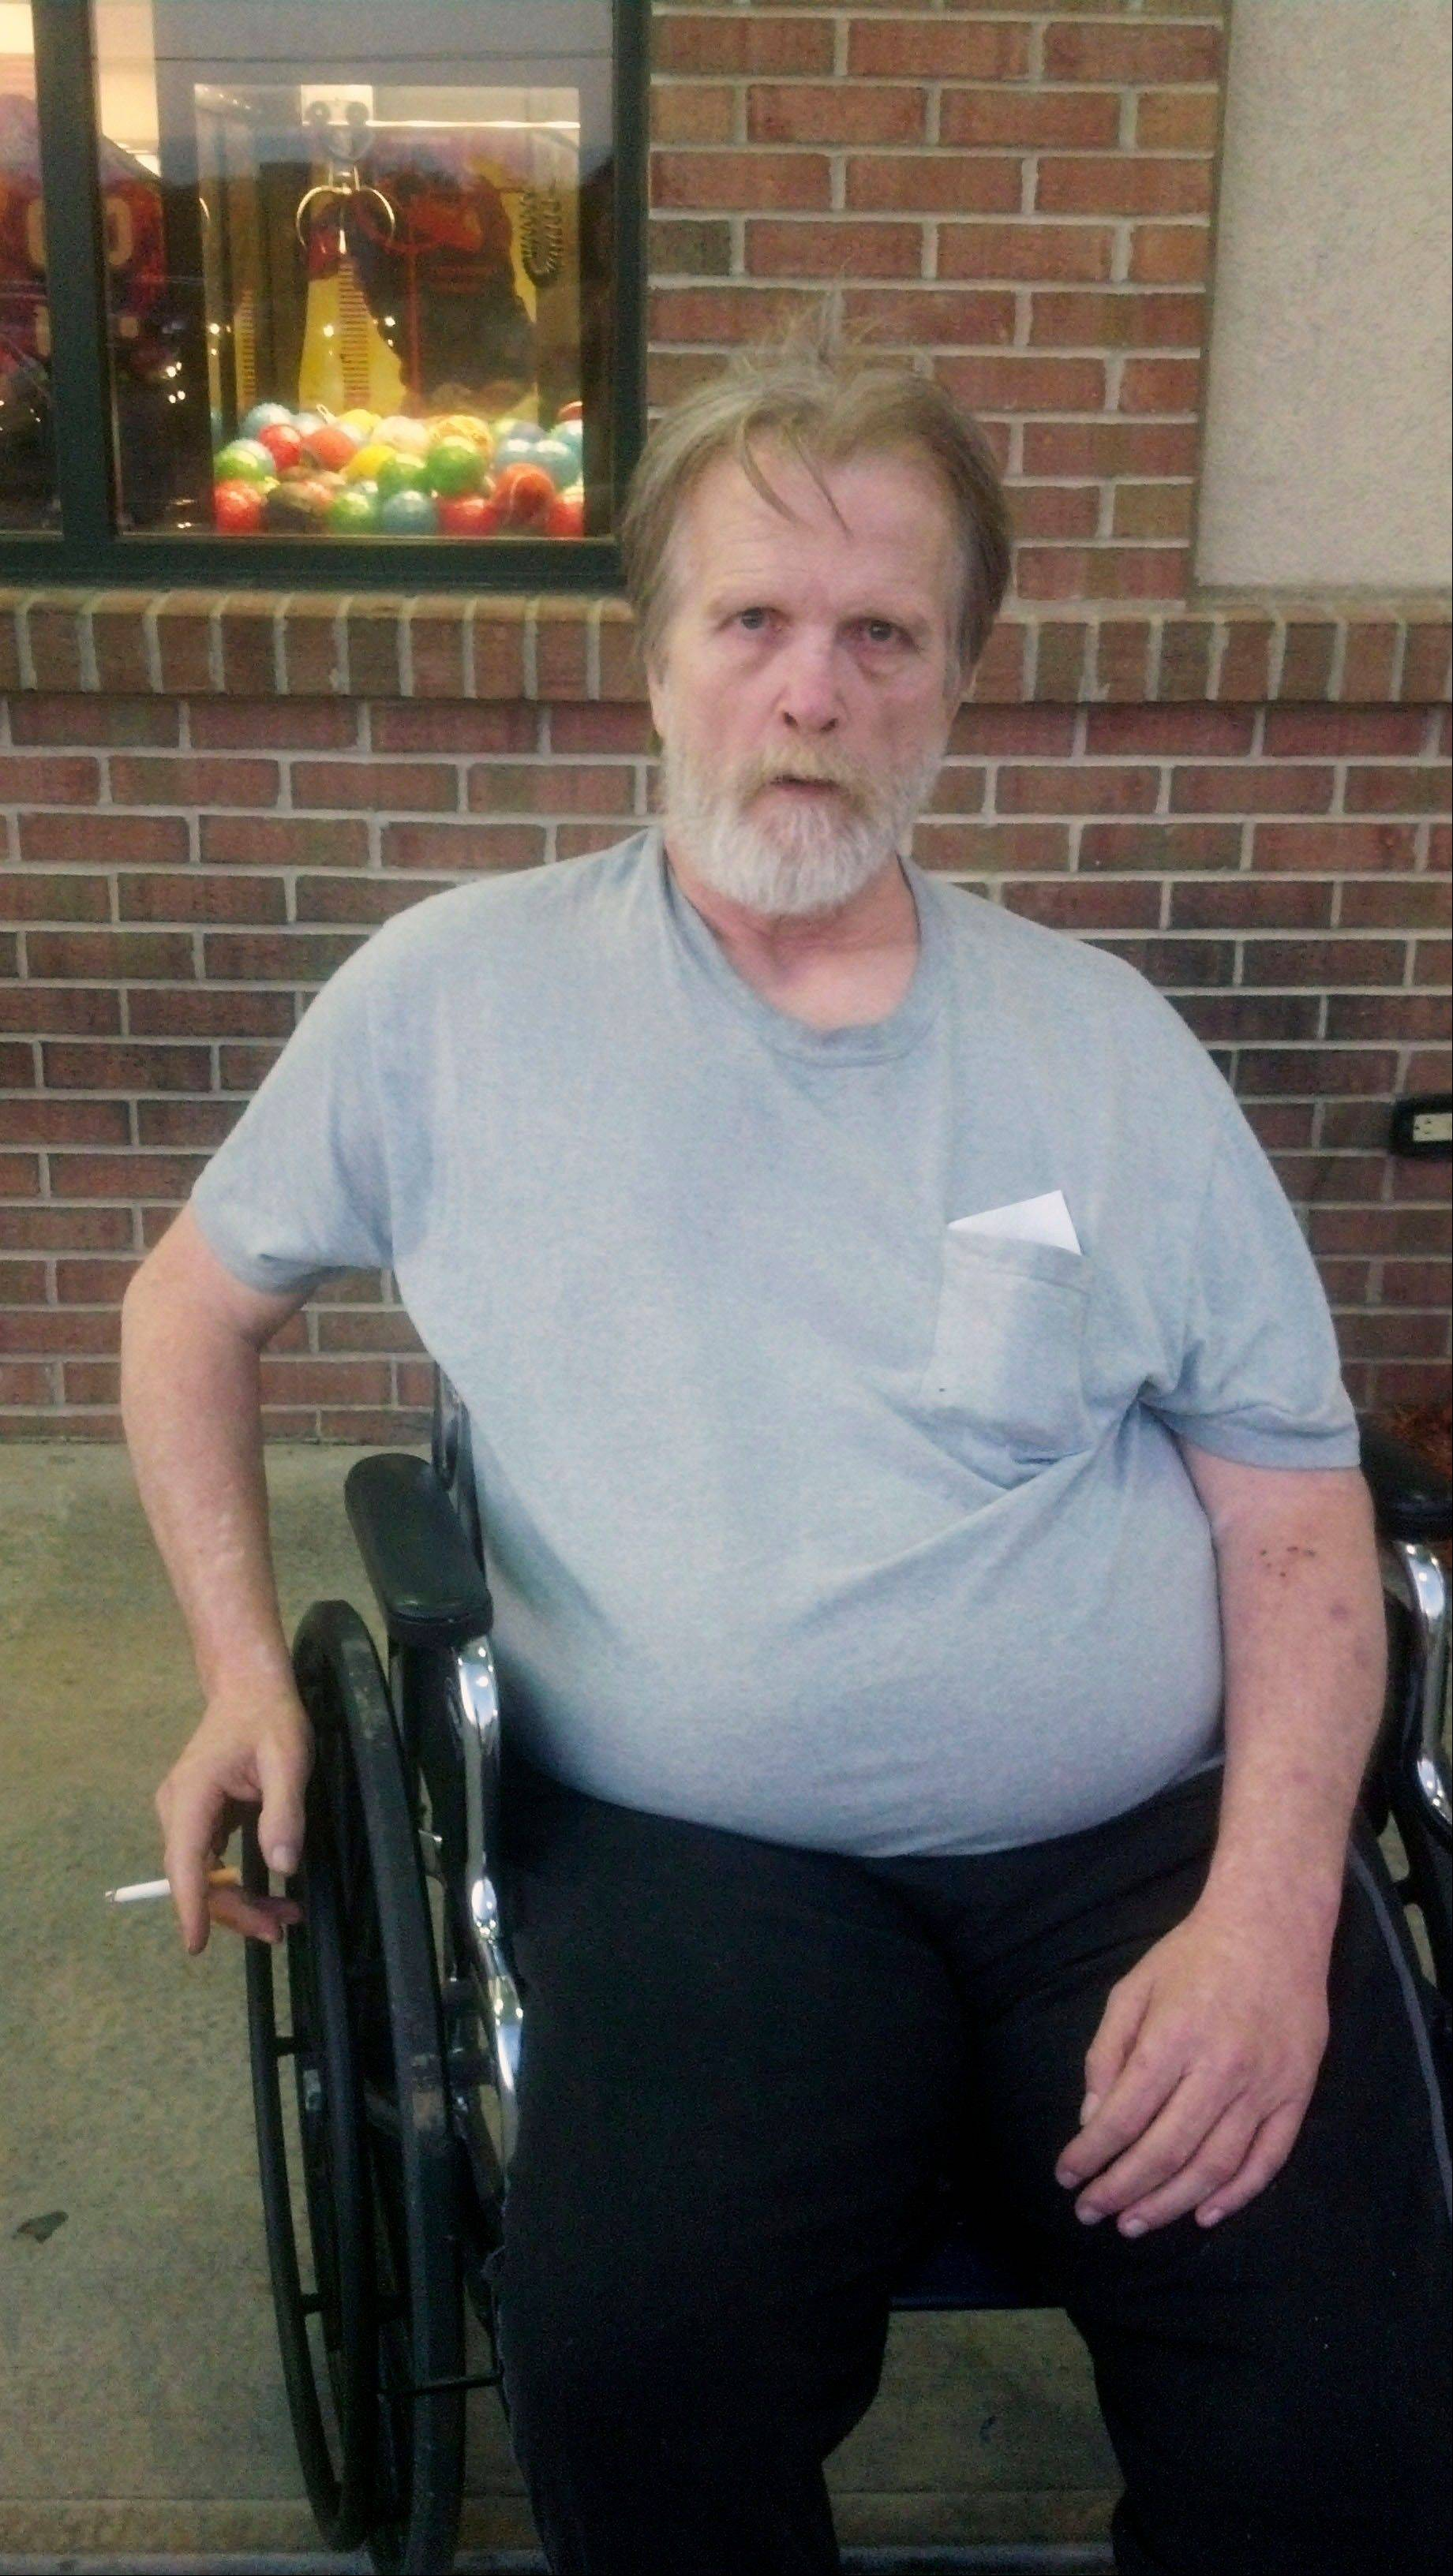 Thomas Hearty, 56, sits outside a Denny�s at a truck stop in Alorton, Ill., on July 31 after workers from the Lebanon Care Center dropped him off there.